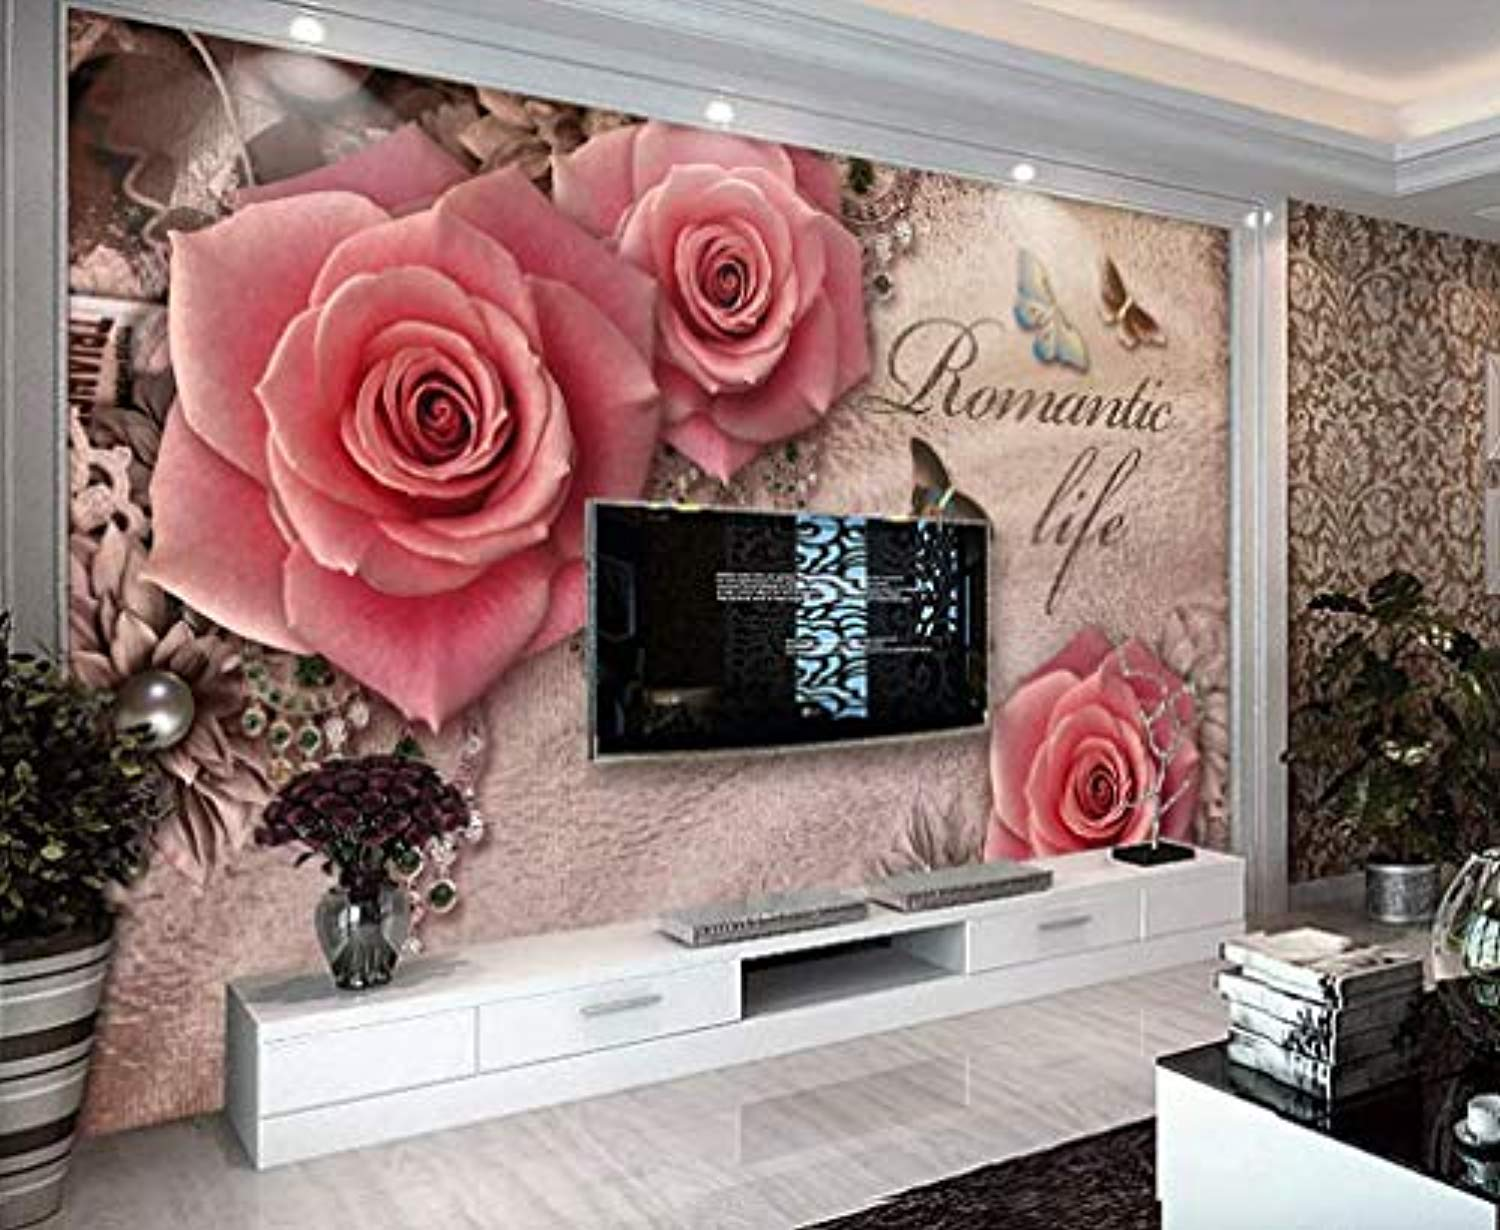 Floral Wallpaper Pink Rose Wall Mural Lux Diamond Wall Art British